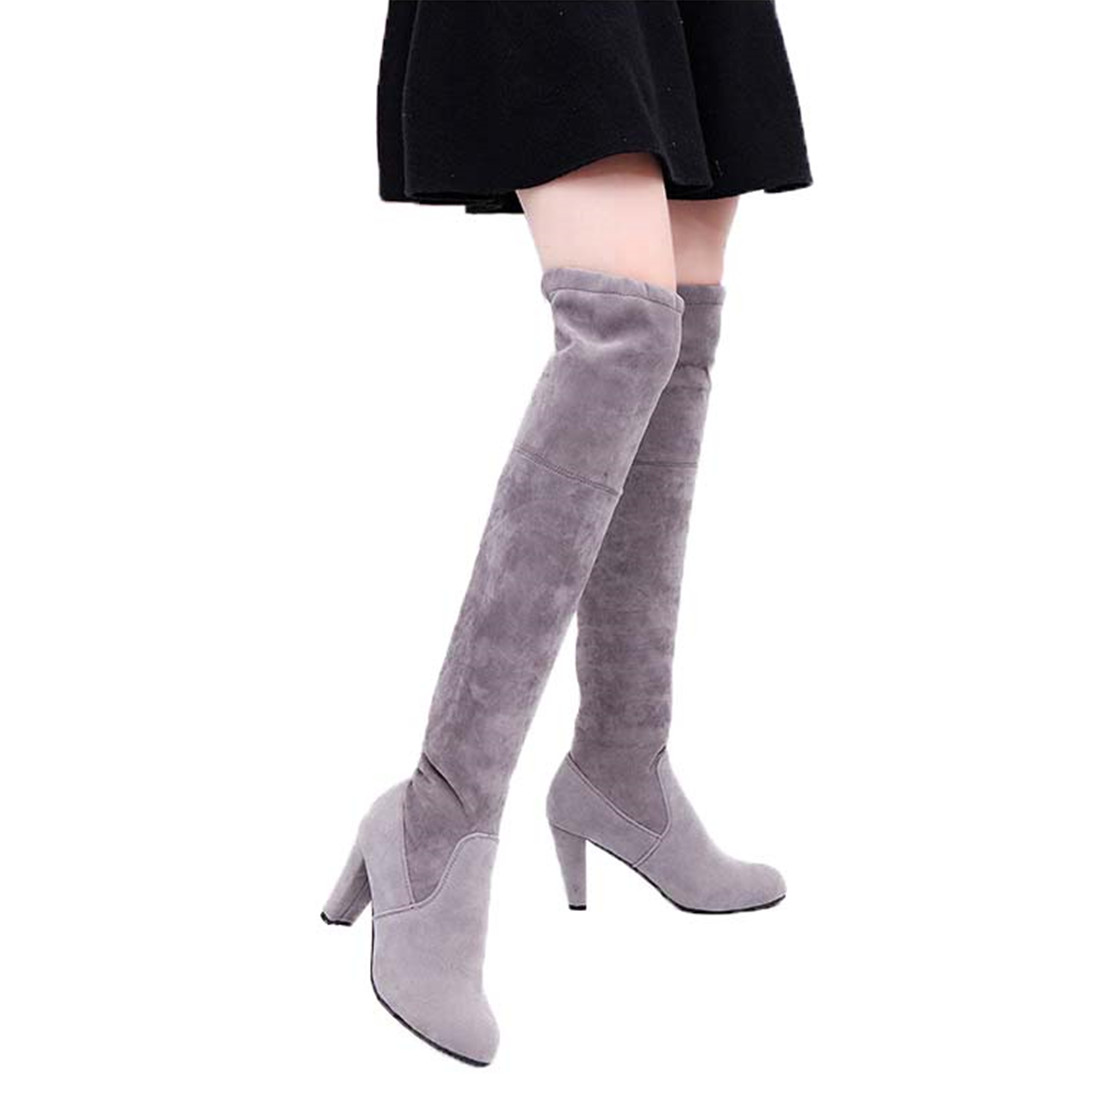 e5a6659d027 Women Boots Sexy Overknee High Heels Faux Suede Chunky Thigh High Boots  Stretch Over the Knee Boots Woman Shoes Plus Size